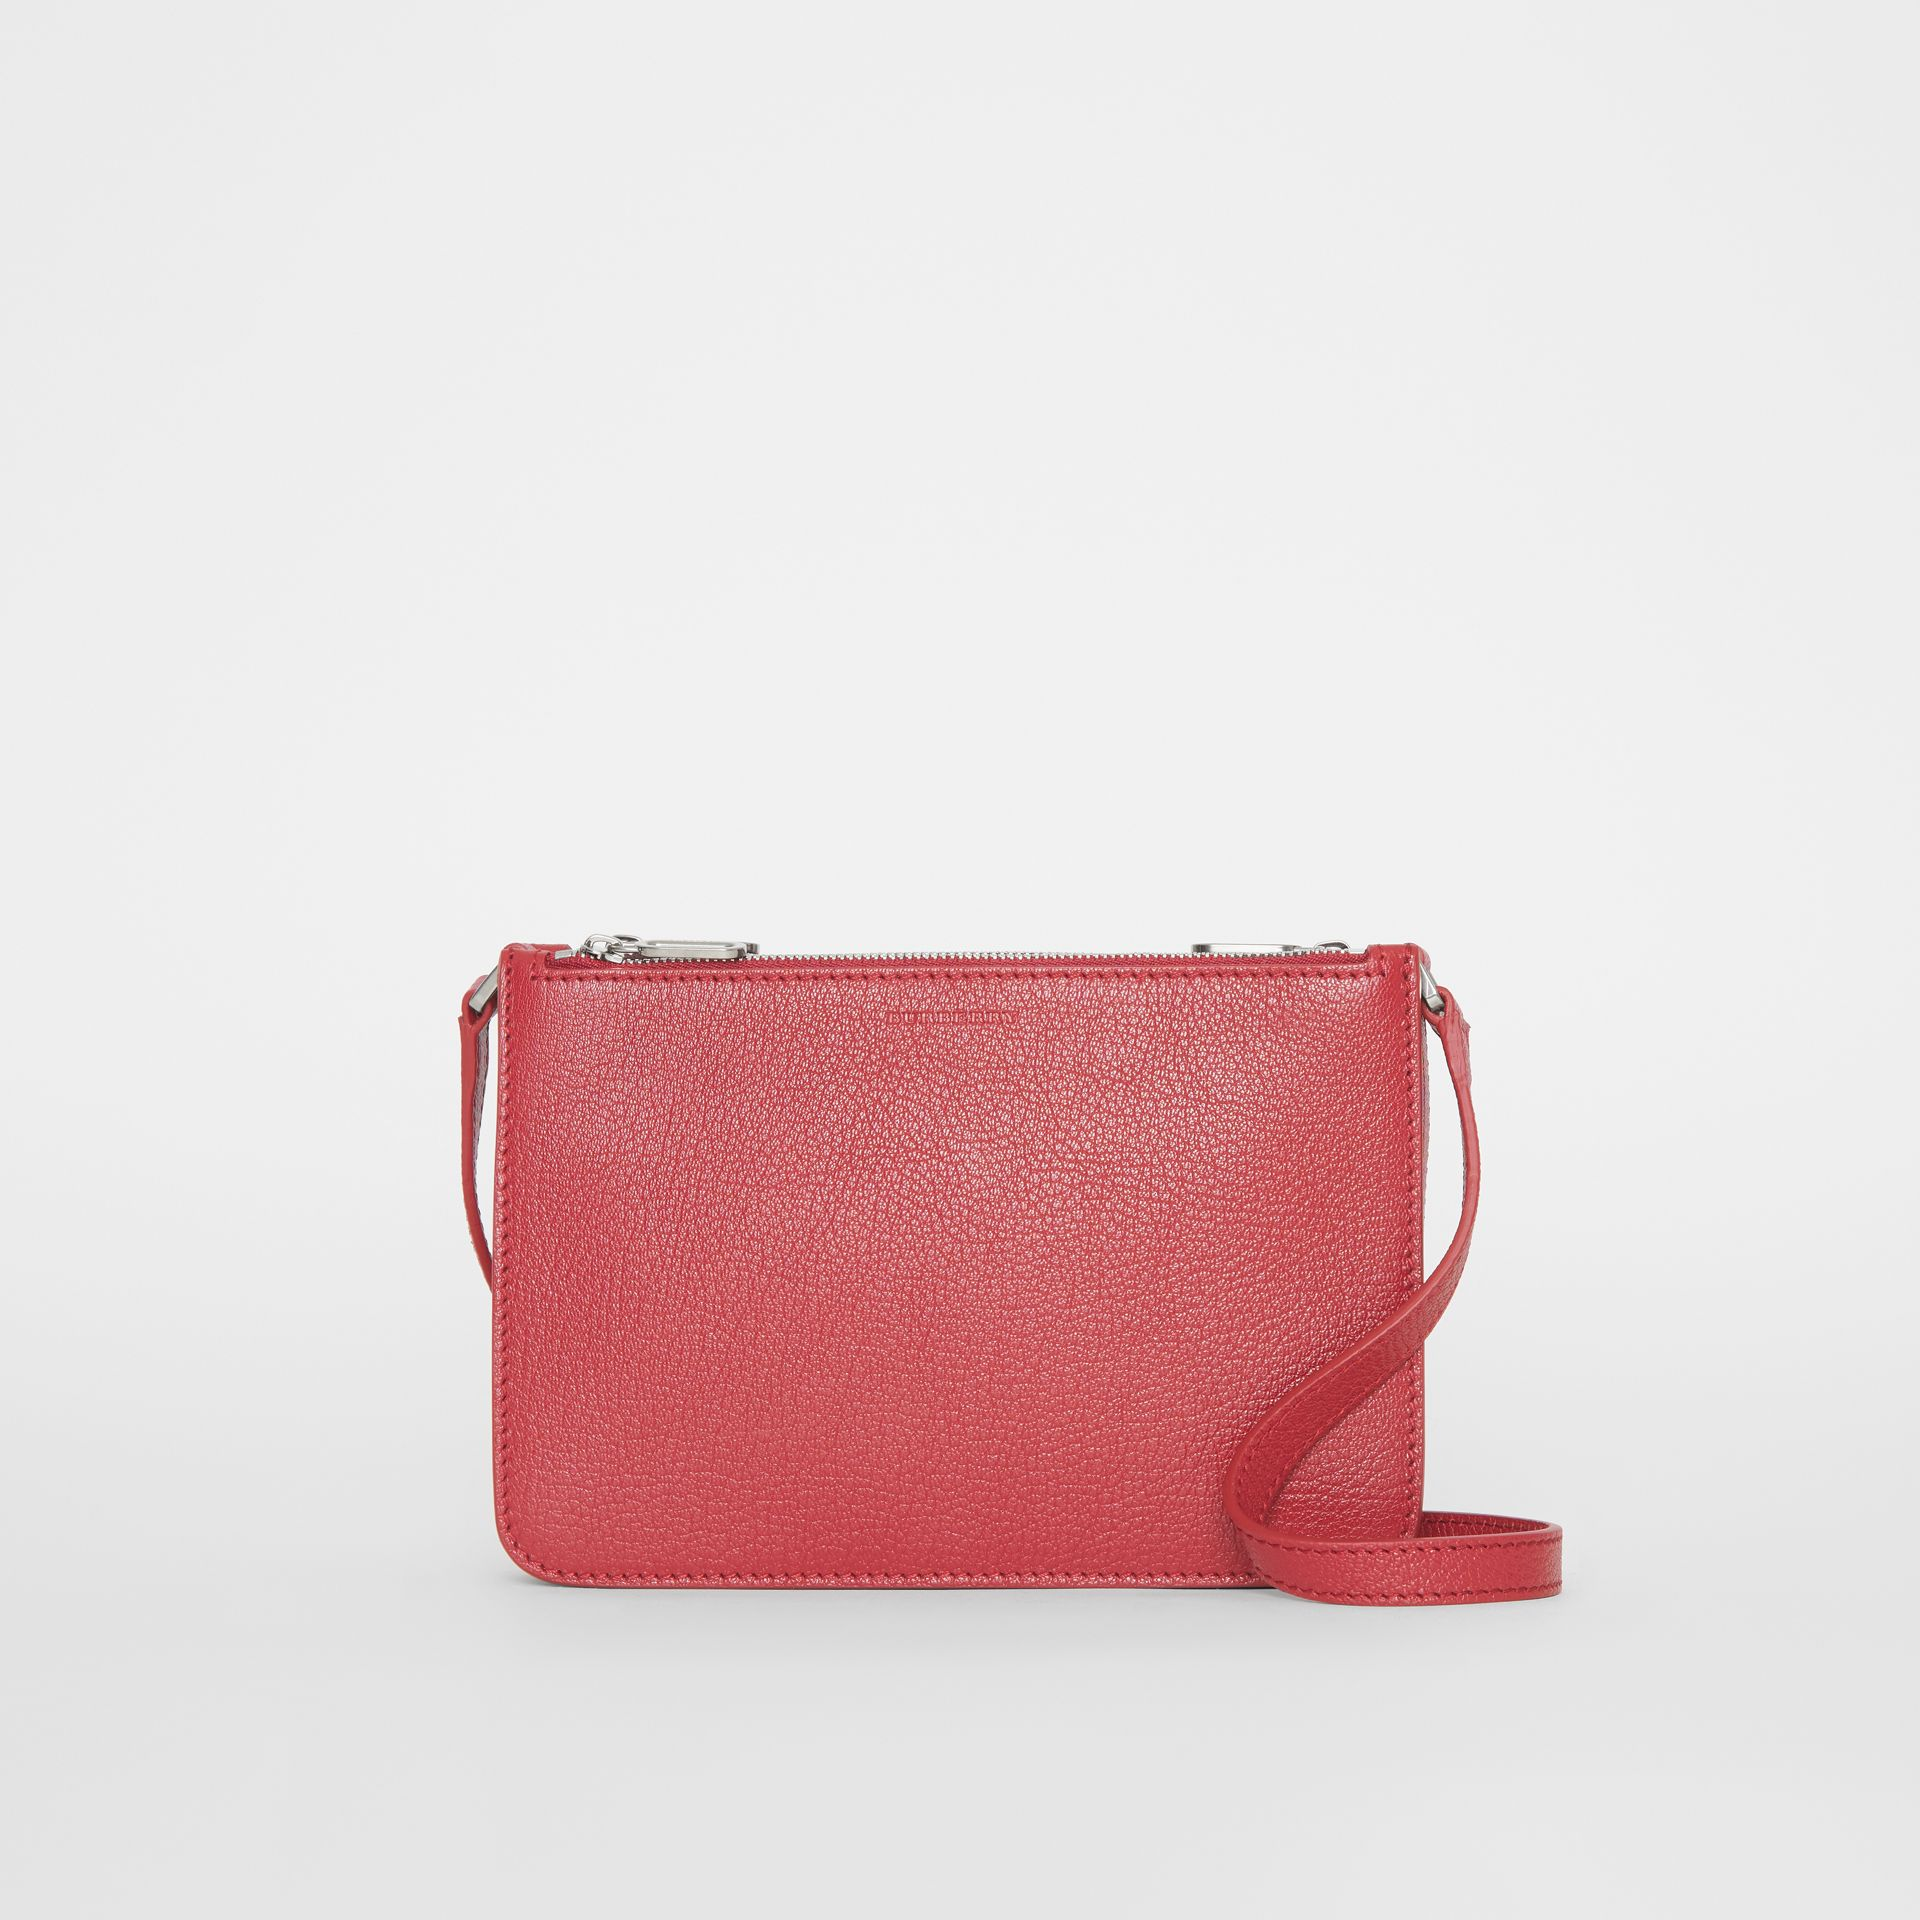 Triple Zip Grainy Leather Crossbody Bag in Crimson - Women | Burberry - gallery image 0